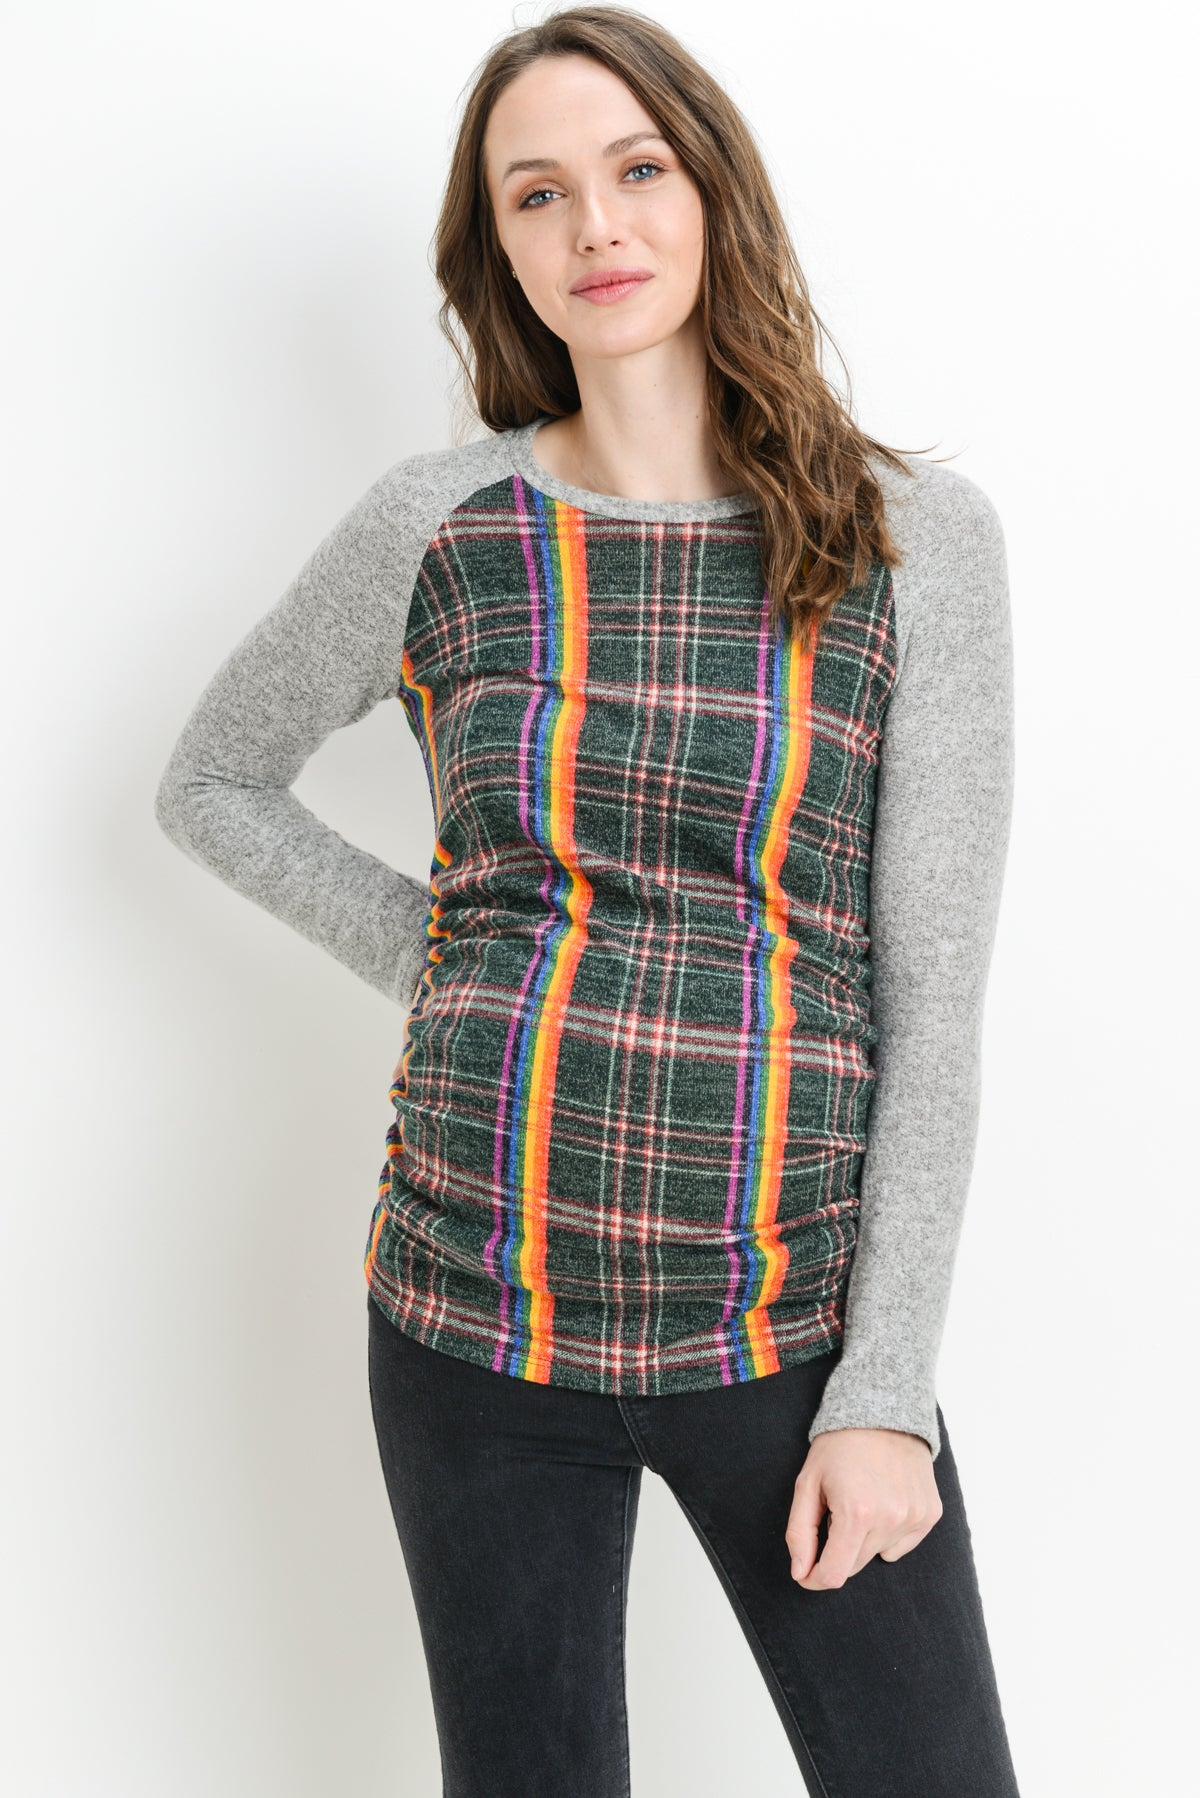 Plaid Raglan Sweater Knit Maternity Top